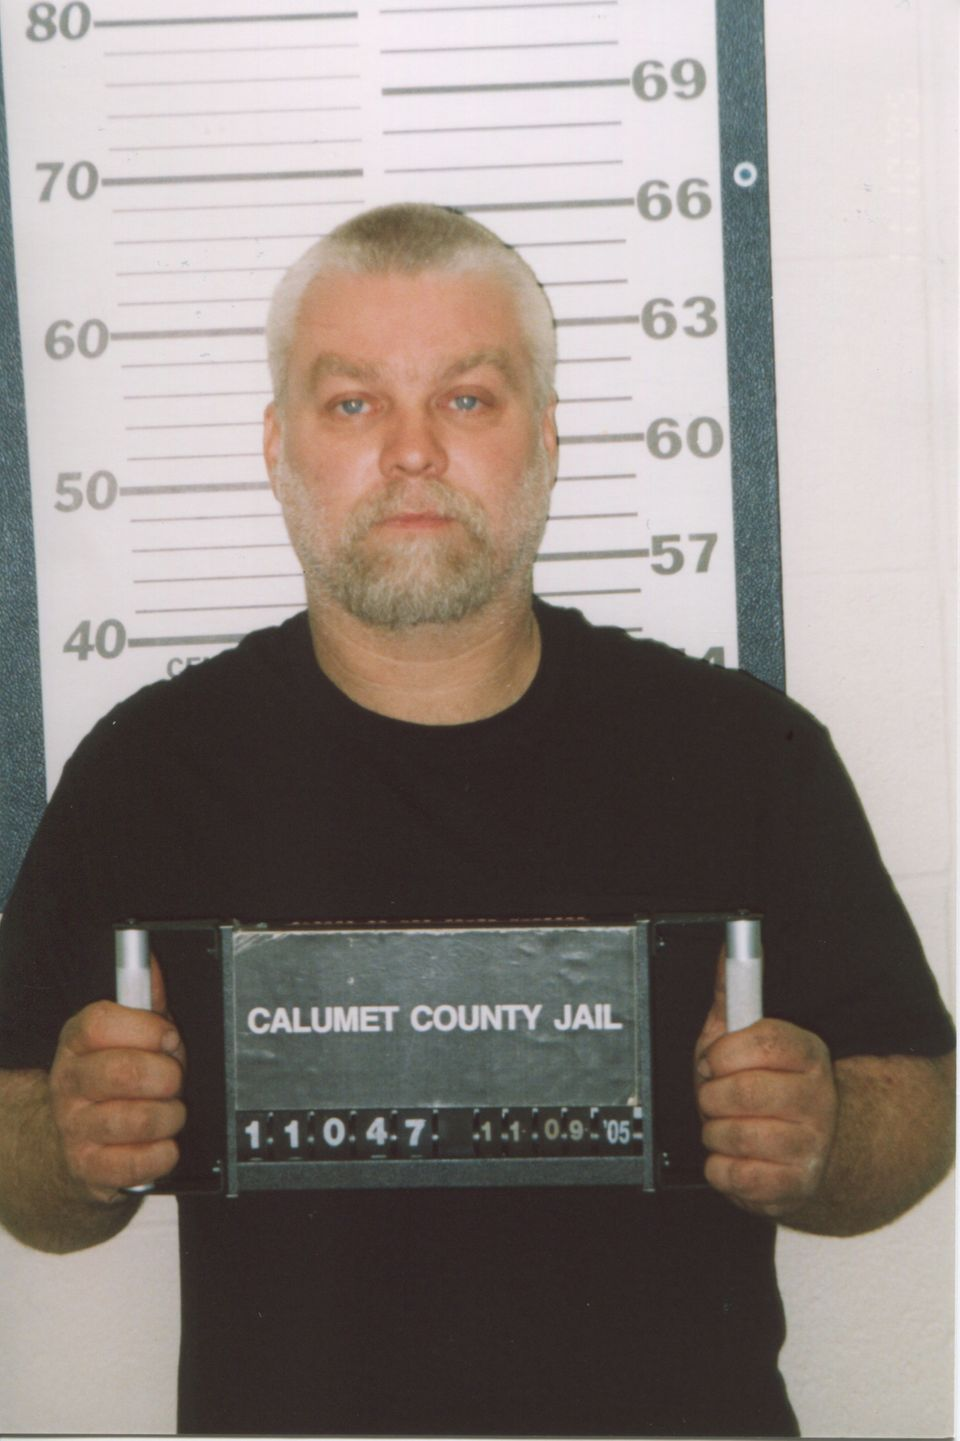 Steven Avery, the main subject of 'Making A